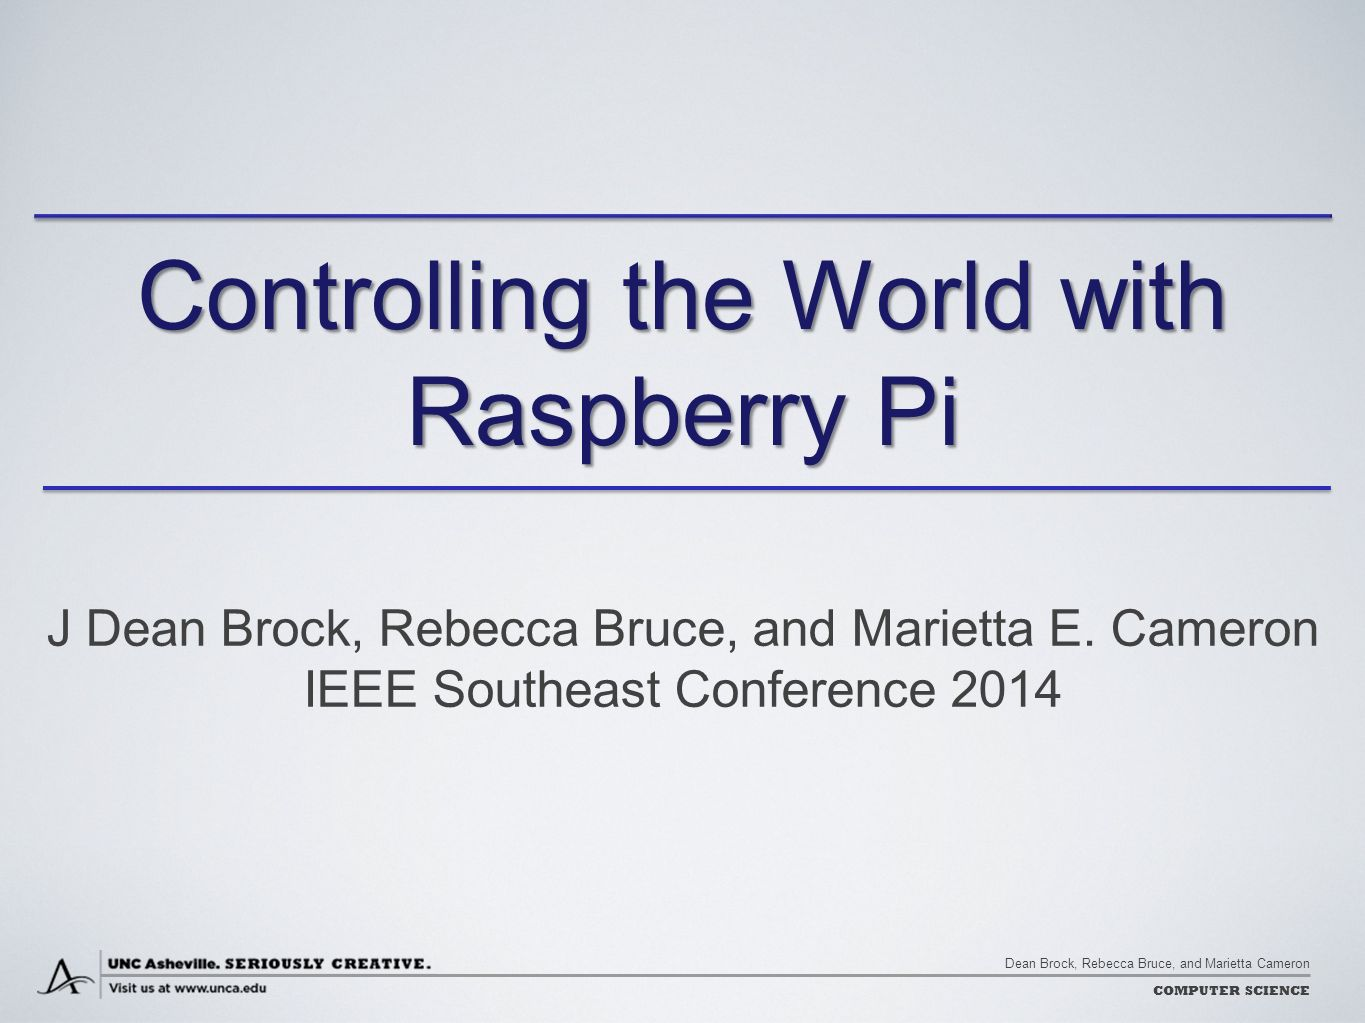 Controlling the World with Raspberry Pi - ppt download